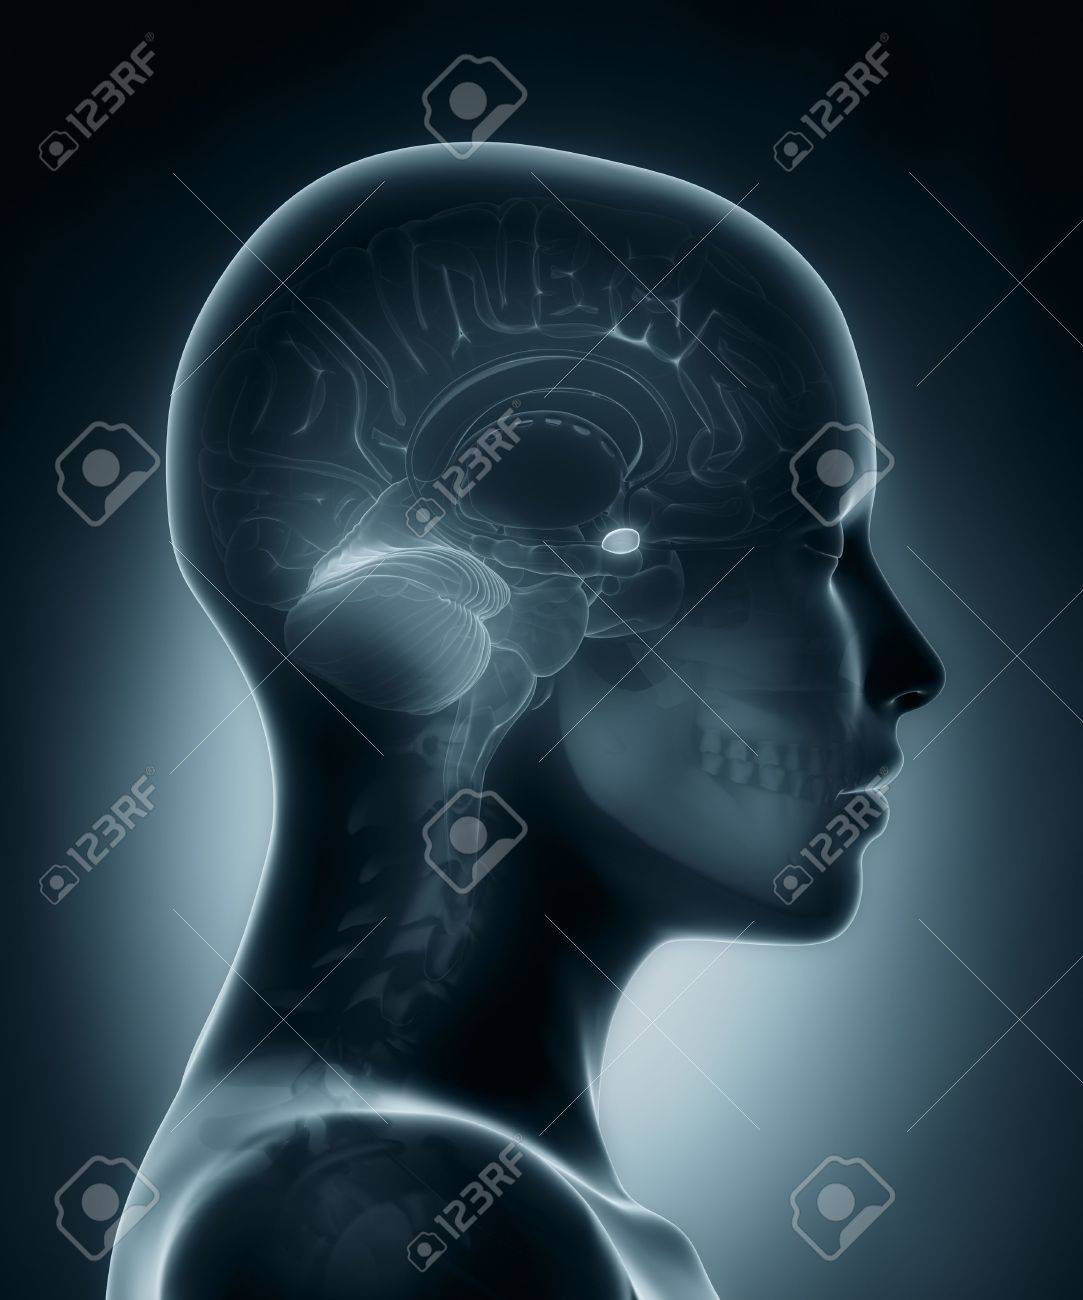 Amygdala Medical X-ray Scan Stock Photo, Picture And Royalty Free ...